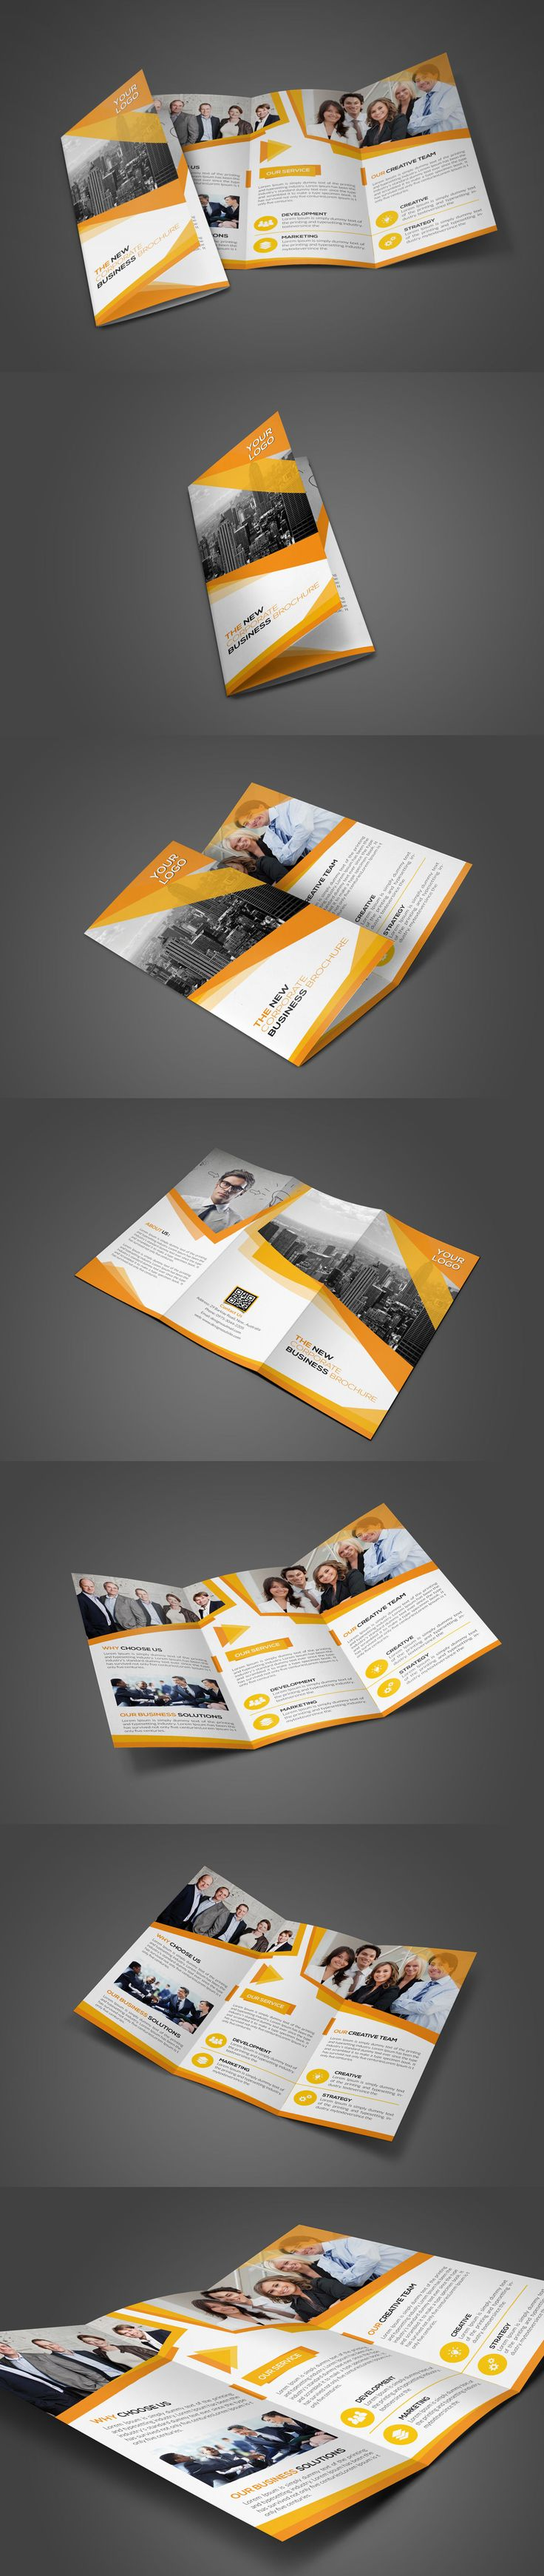 Awesome Creative Corporate Trifold Brochure Template PSD